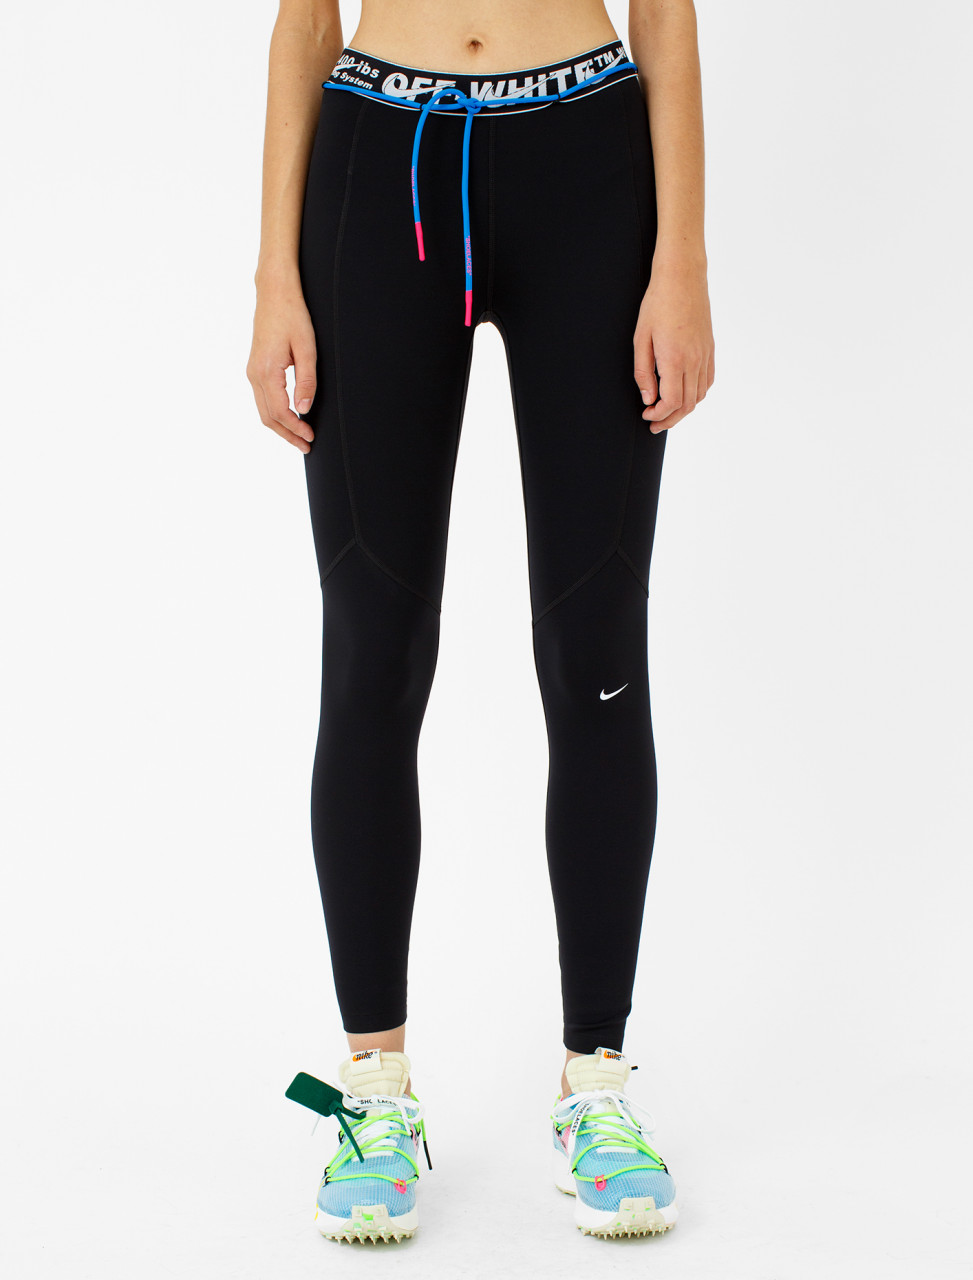 x Off-White Utility Running Tights in Black